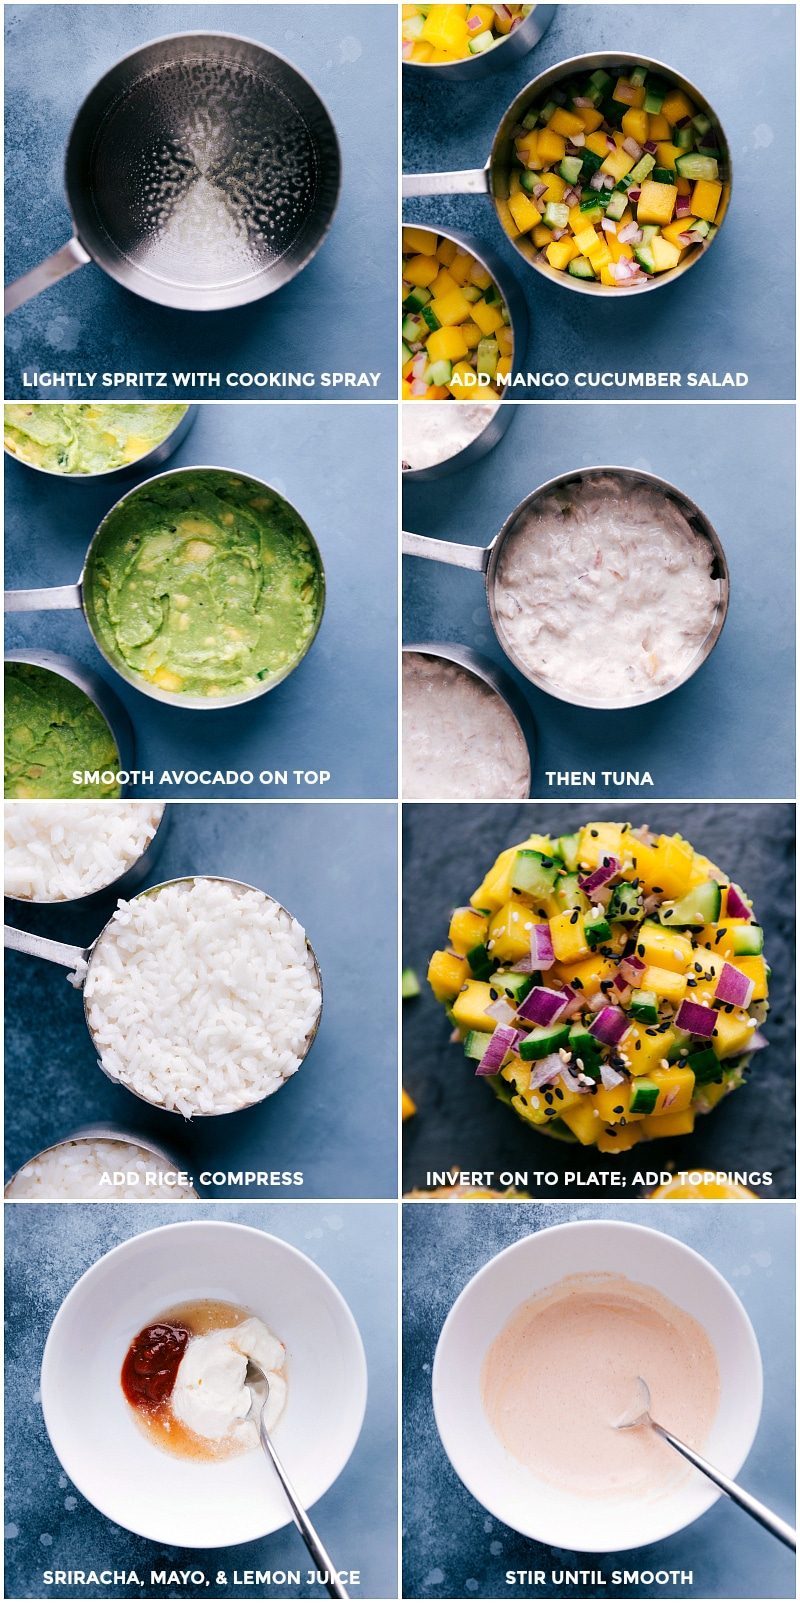 Images of all the layers of the Tuna Stacks being layered into the cup measure; and the sriracha mayo being made.